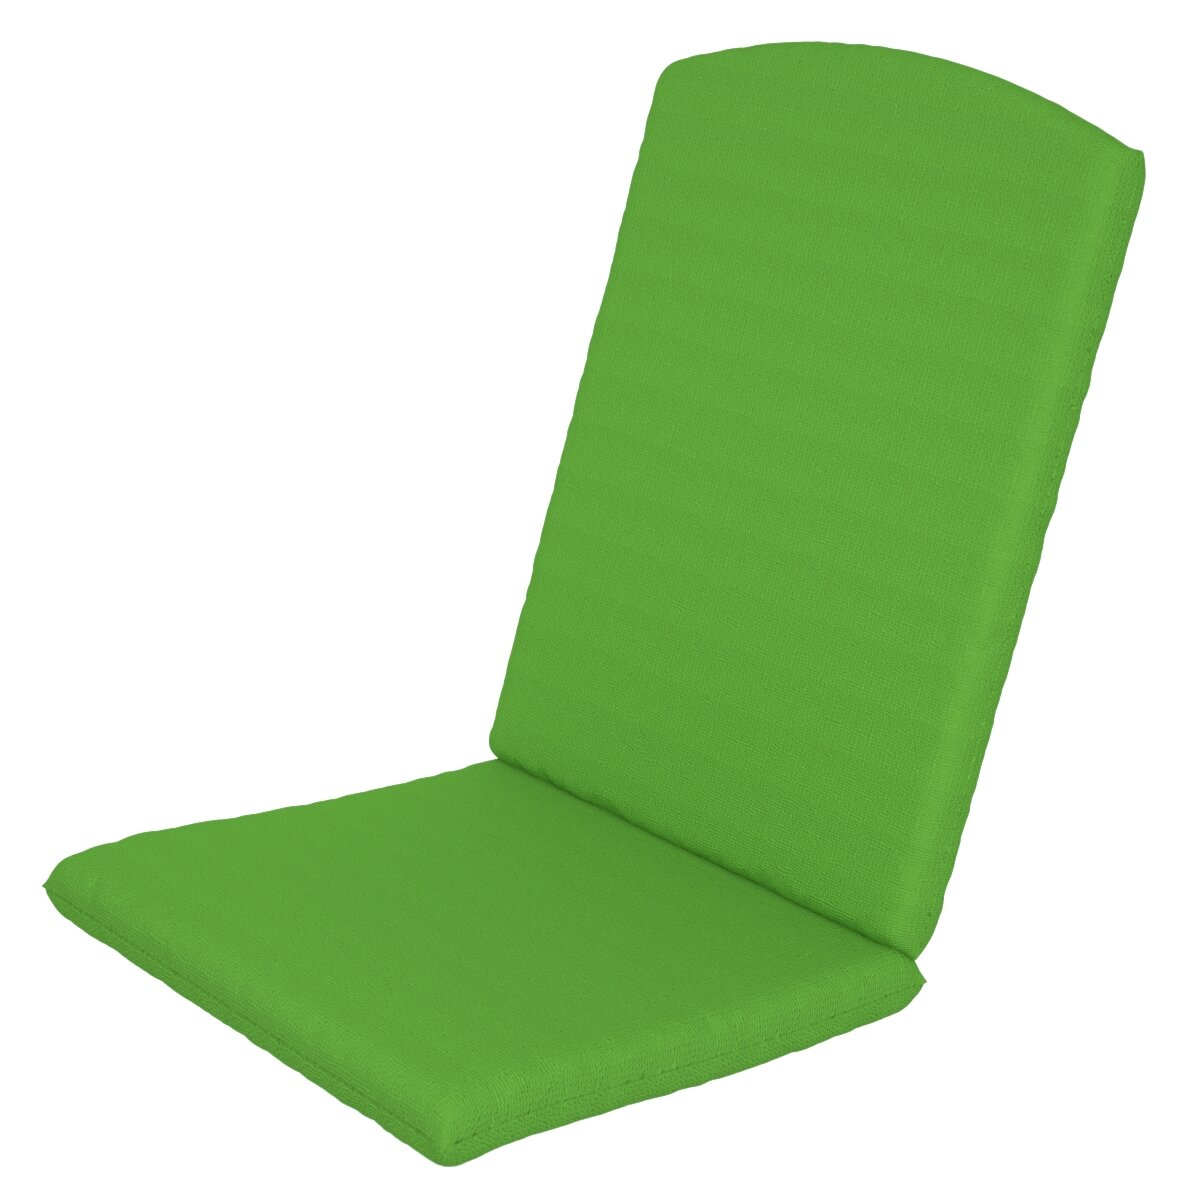 trex outdoor solid outdoor sunbrella rocking chair cushion